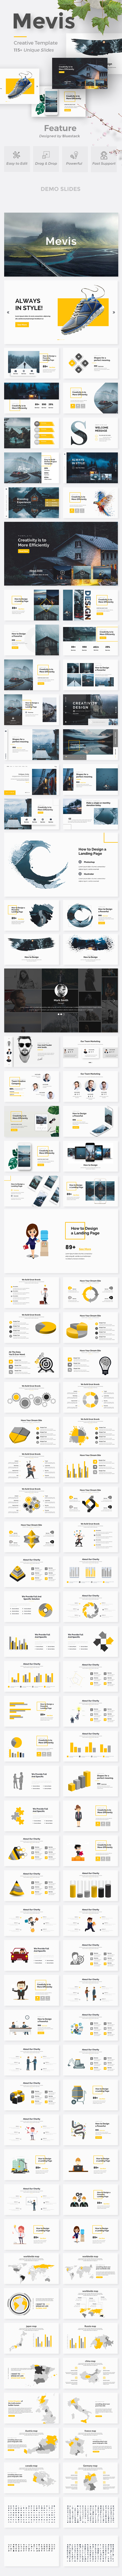 Mevis Creative Google Slide Template - Google Slides Presentation Templates